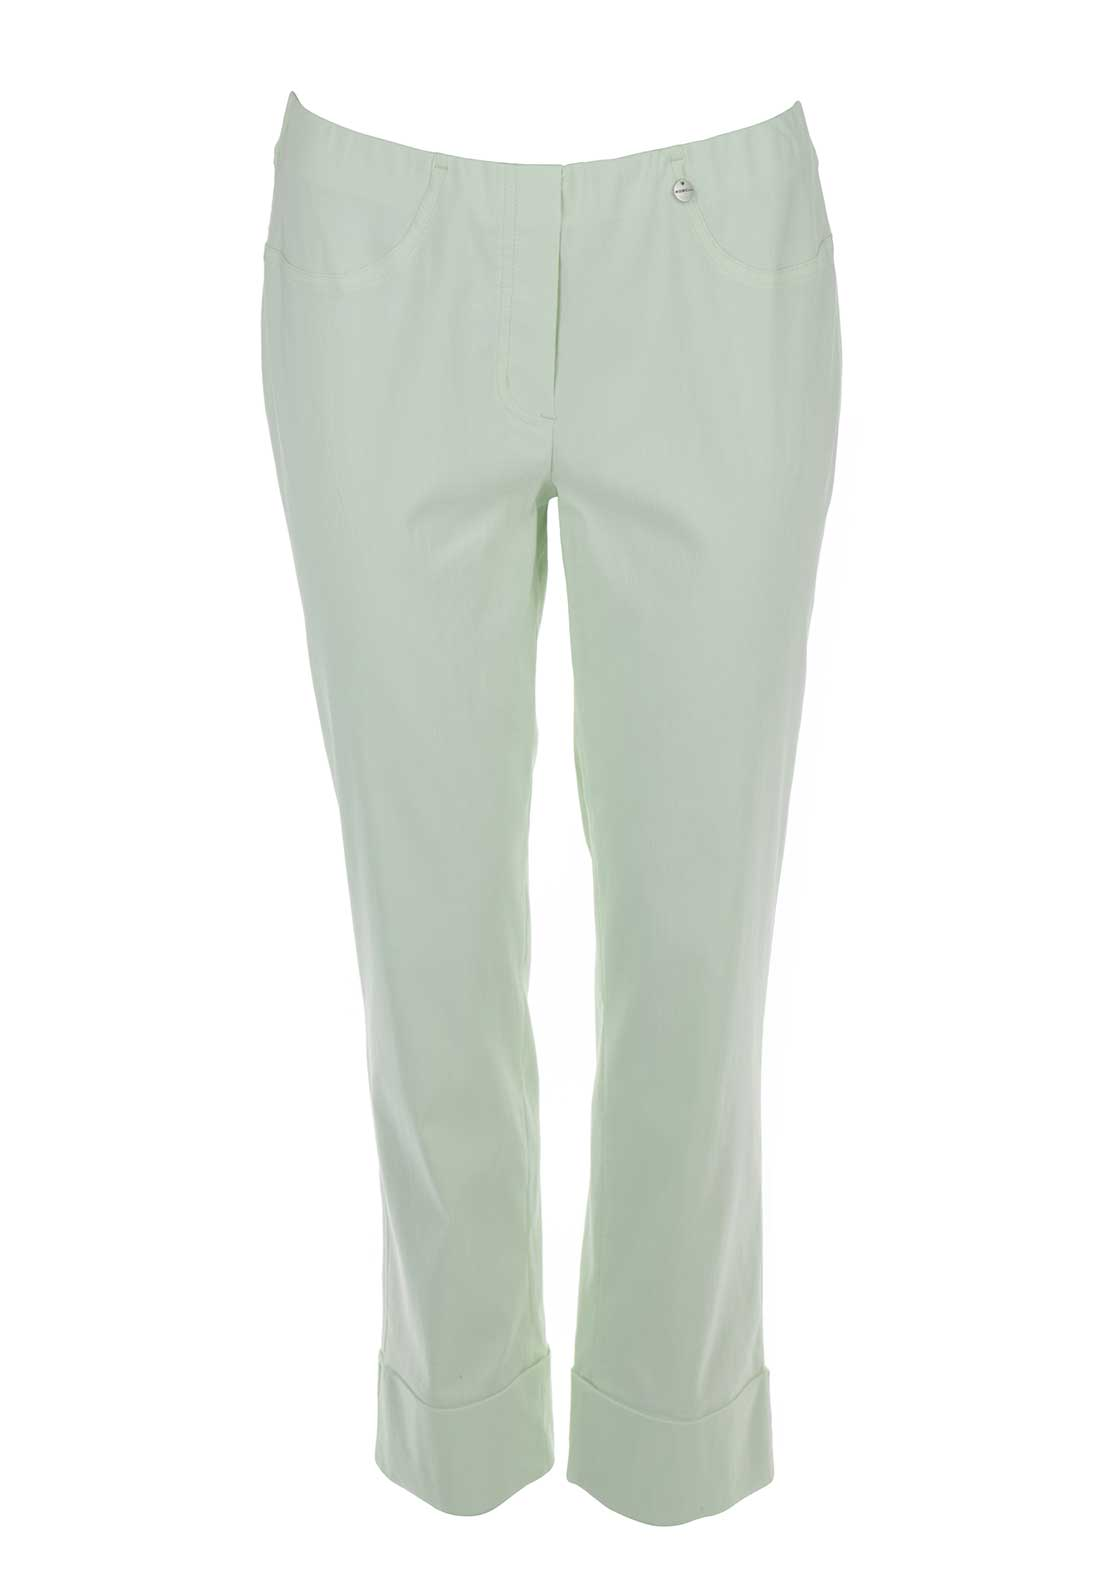 Robell Bella 09 Turn Up Cropped Trousers, Soft Green